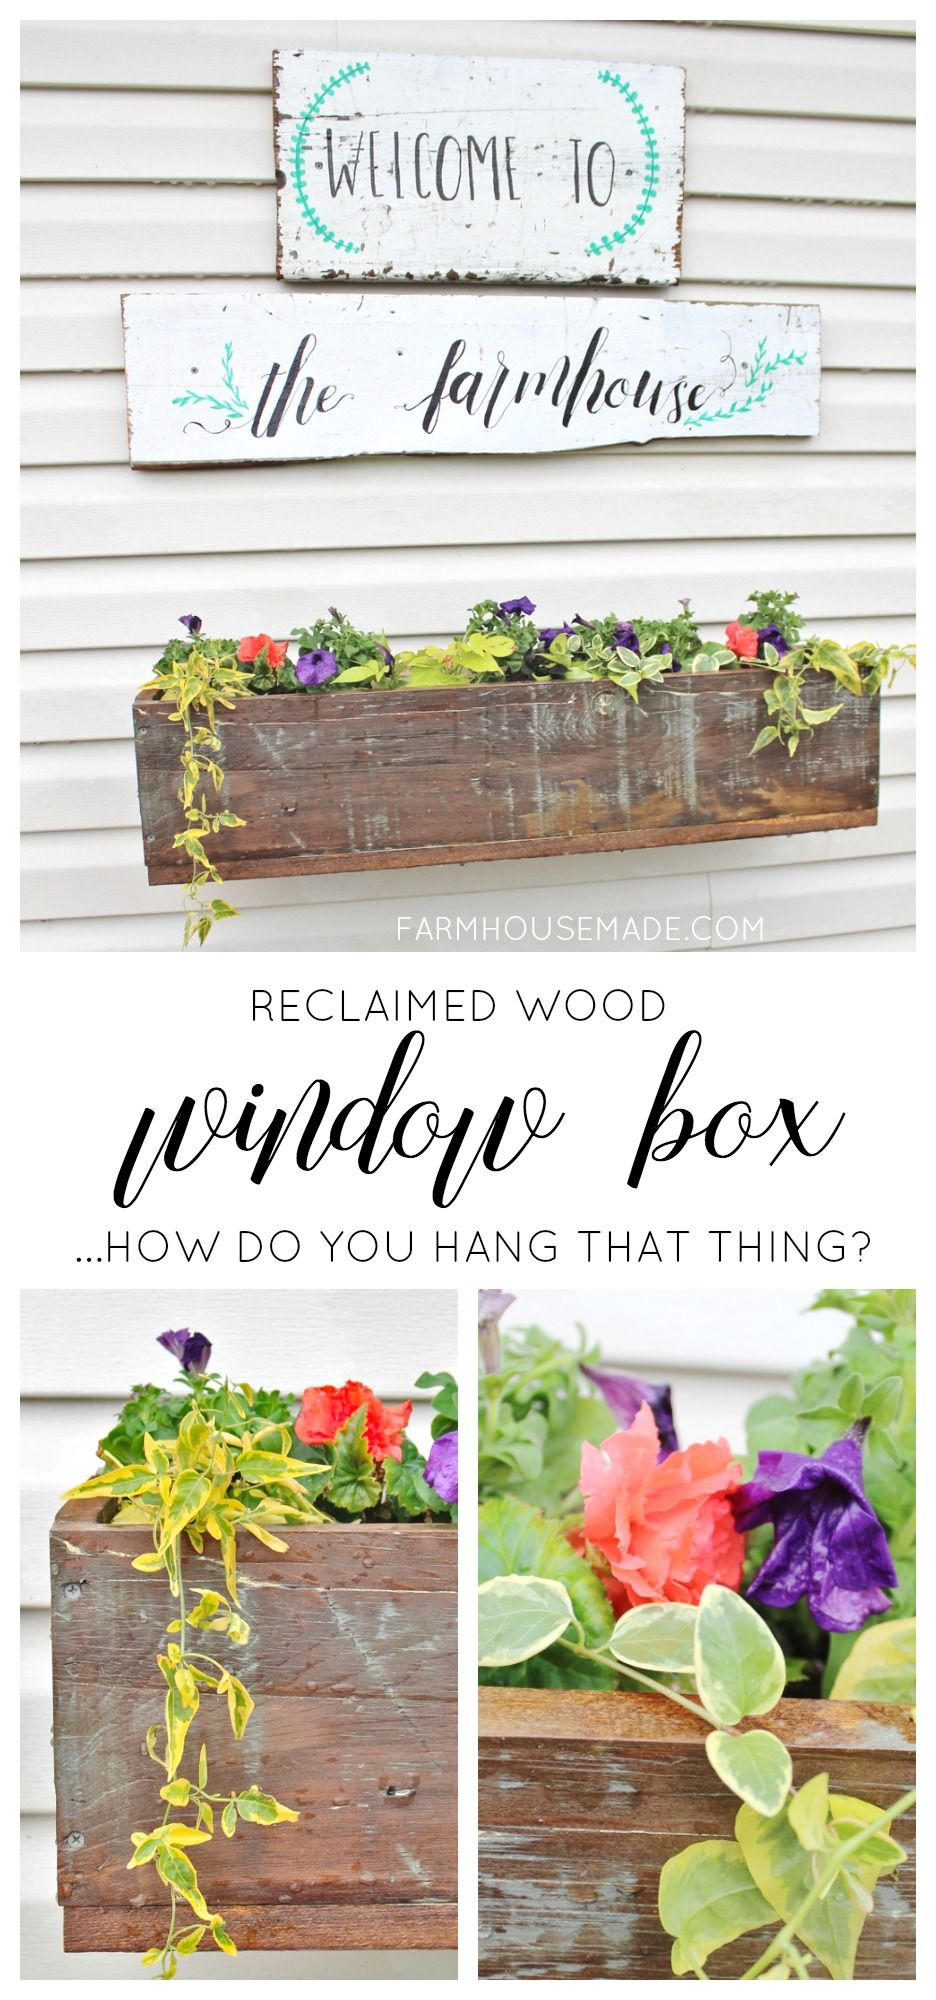 How To Make And Hang A Window Box On Vinyl Siding For